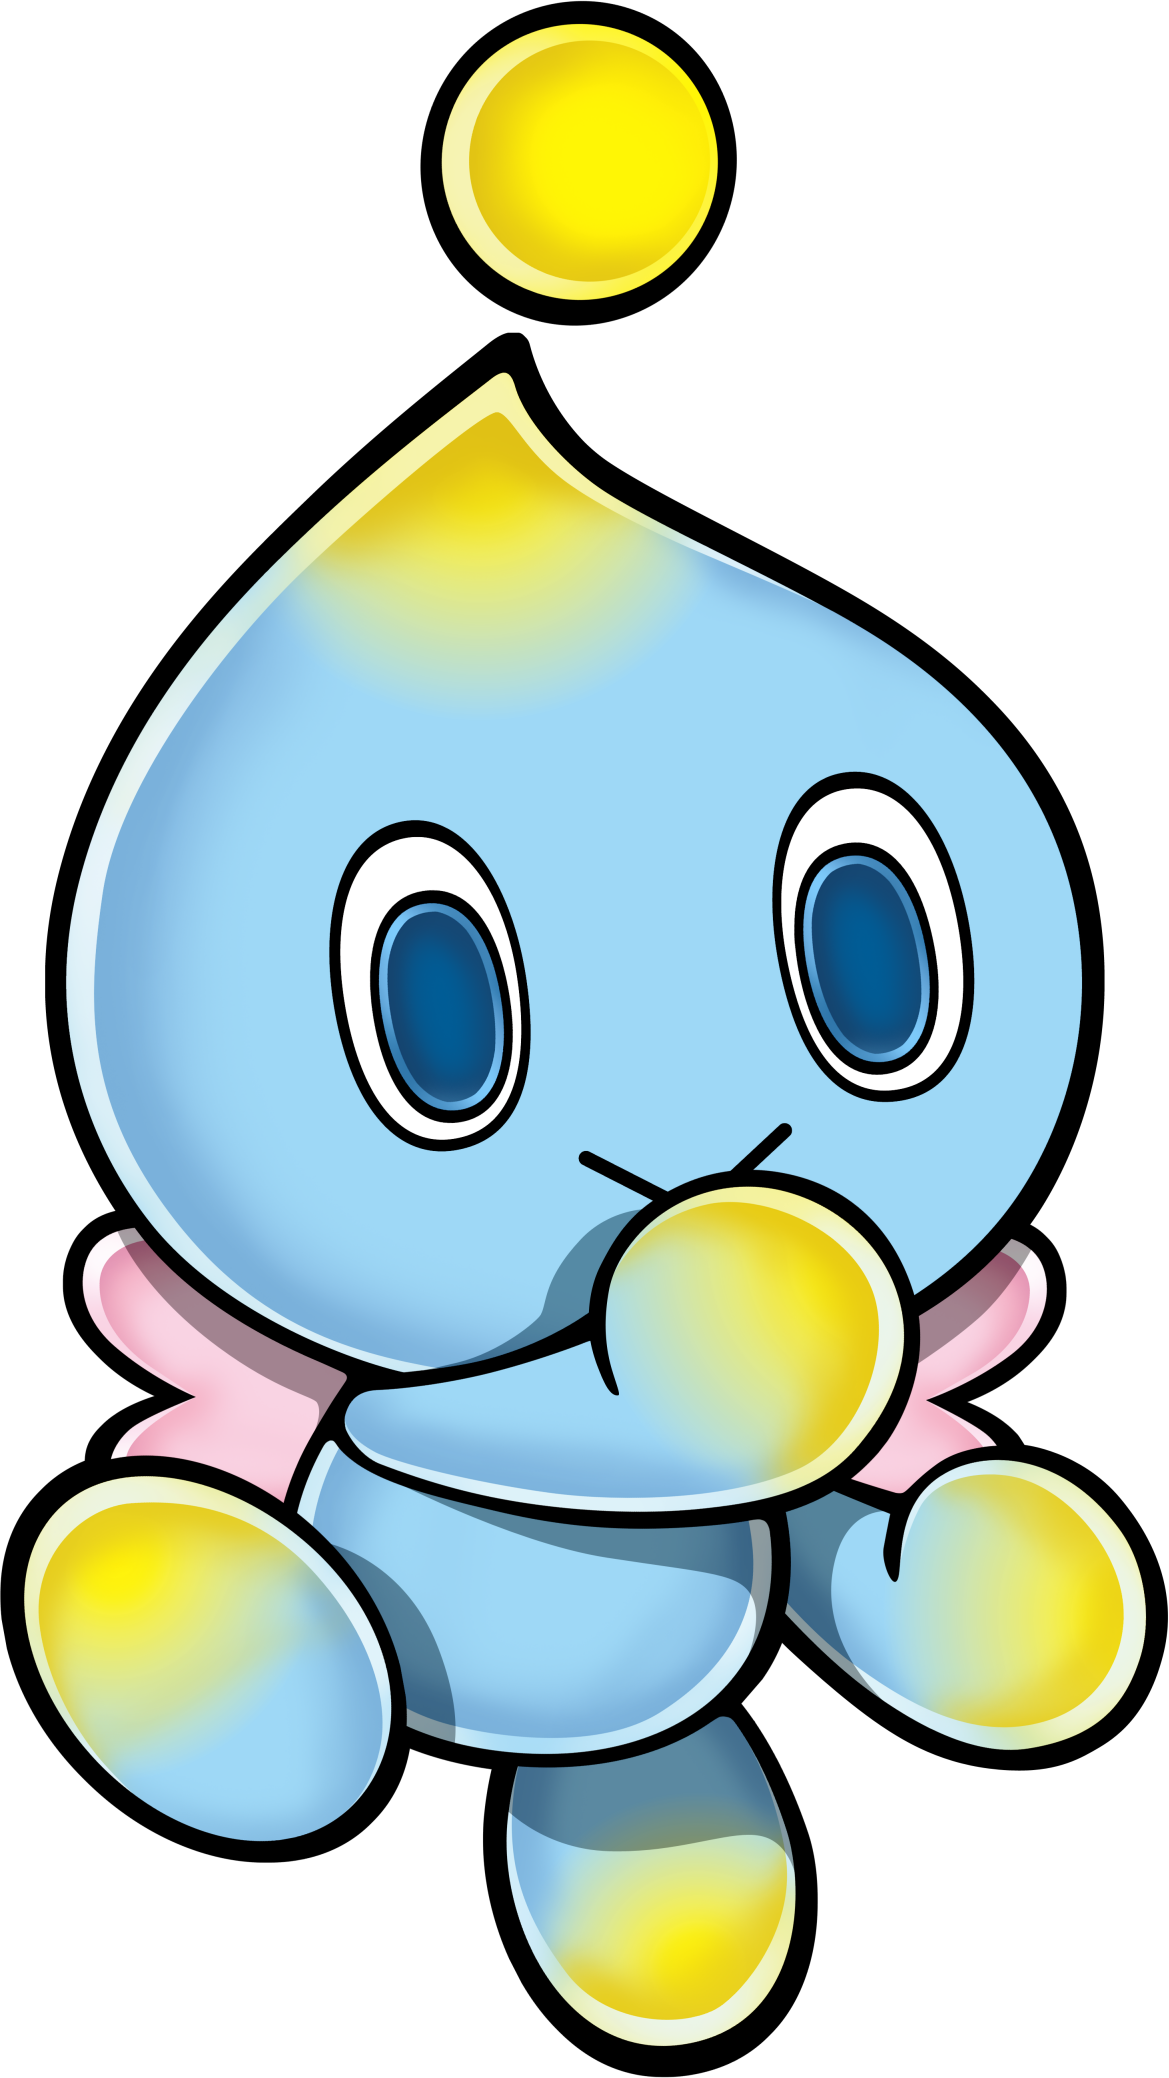 Transparent chao sonic. Image png news network